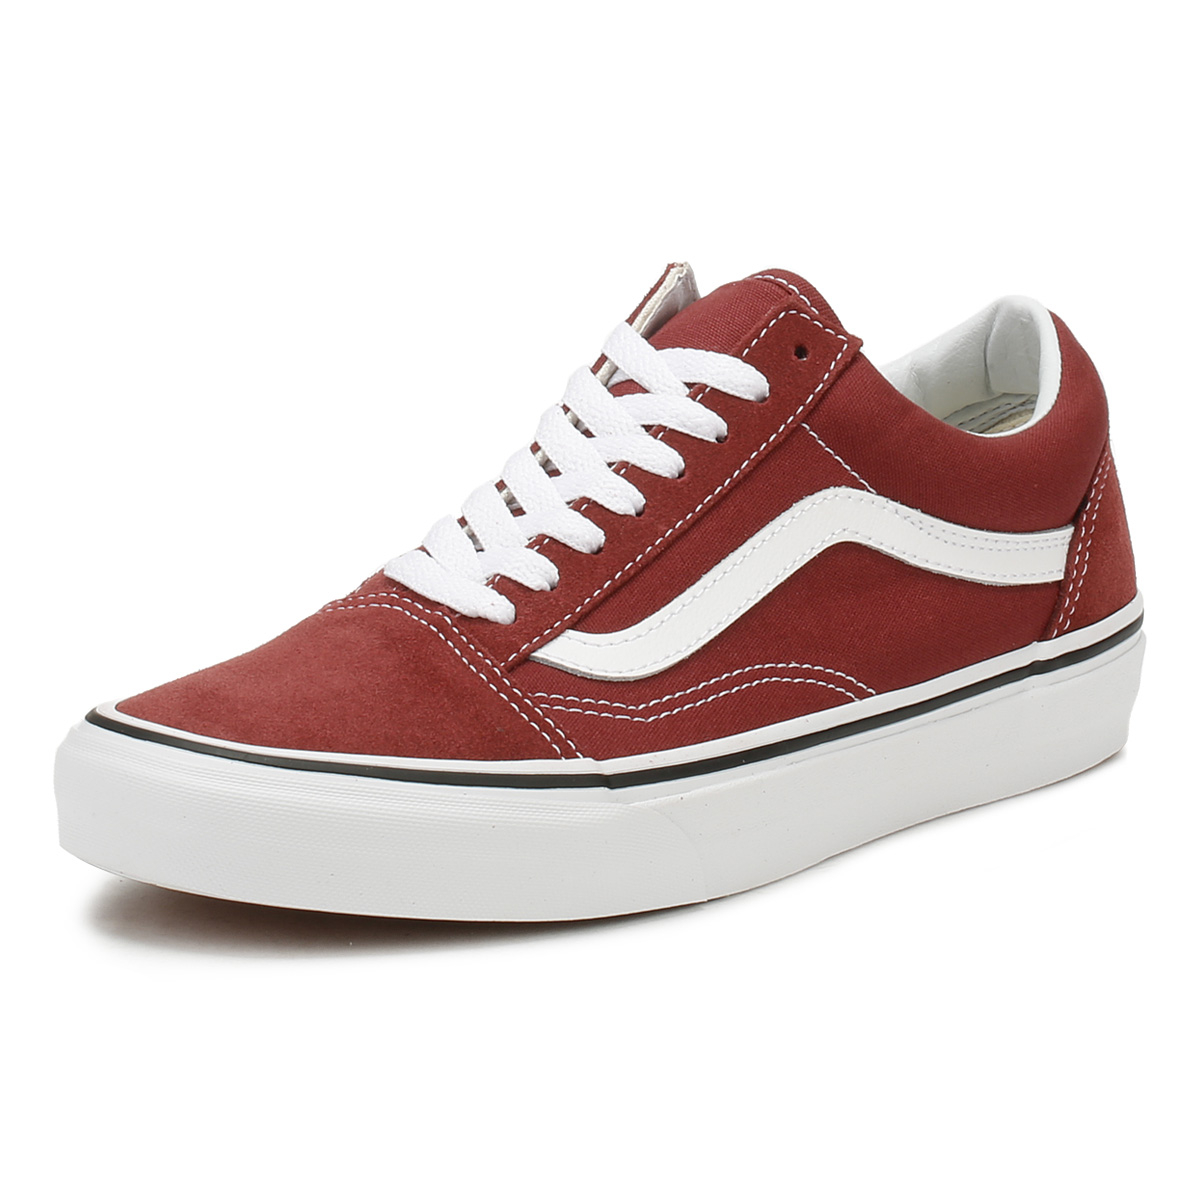 8e88f0e15bb36 Vans Womens Apple Butter   True White Old Skool Trainers Lace Up Skate Shoes